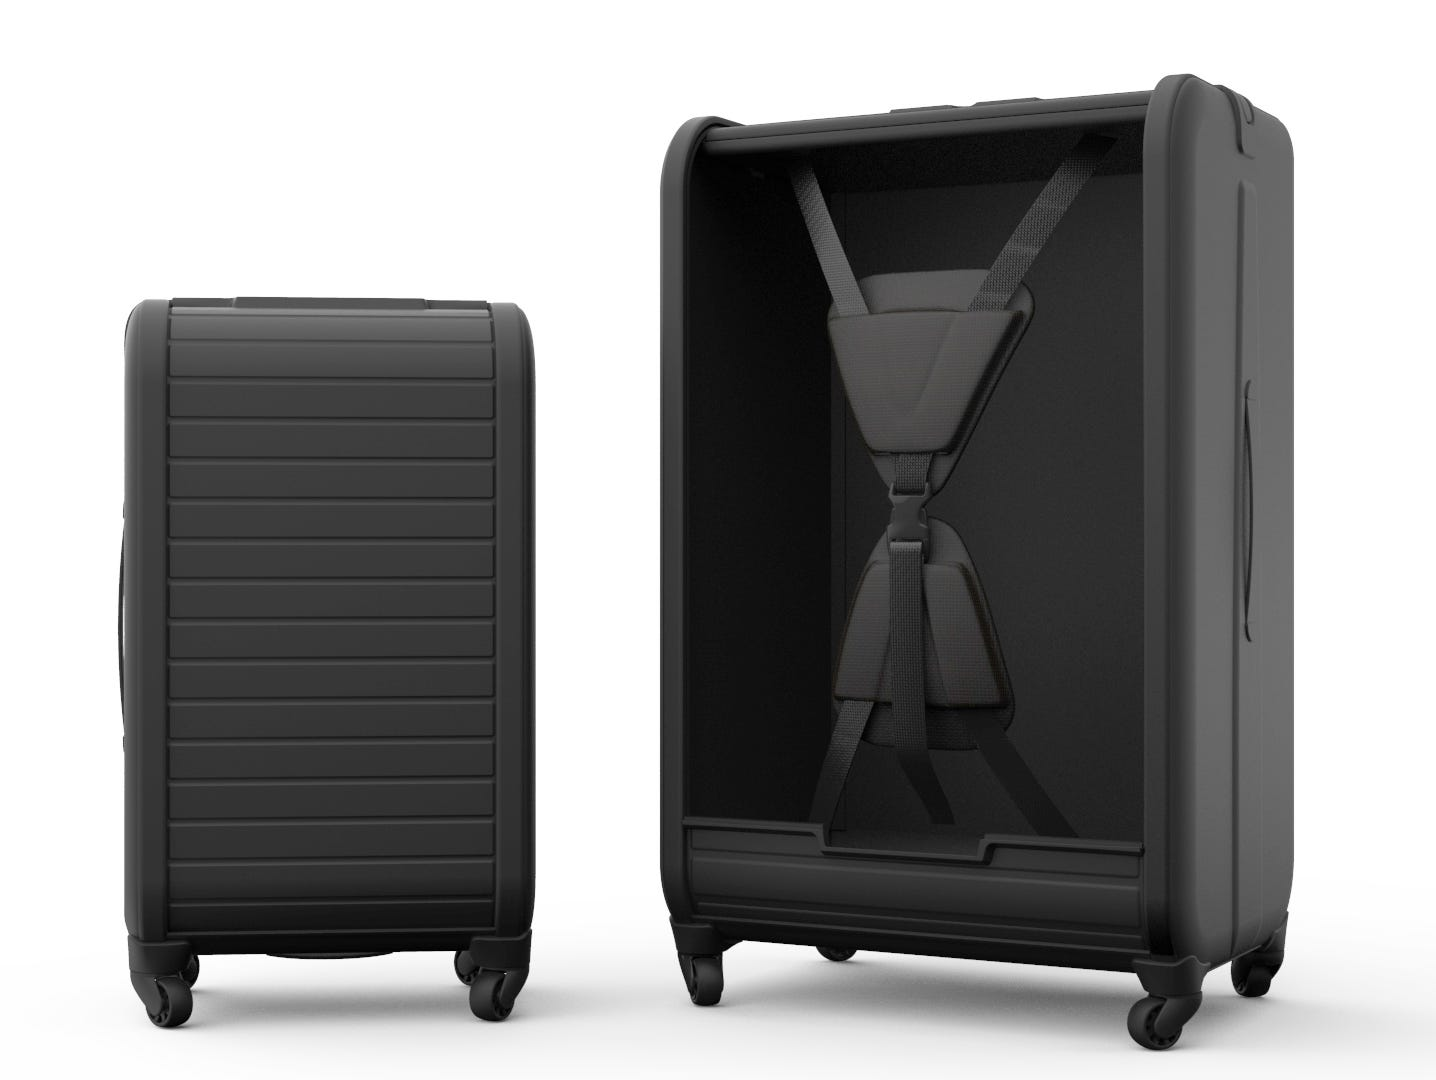 Trunkster features a groundbreaking rolltop door, GPS, scale and USB charger.